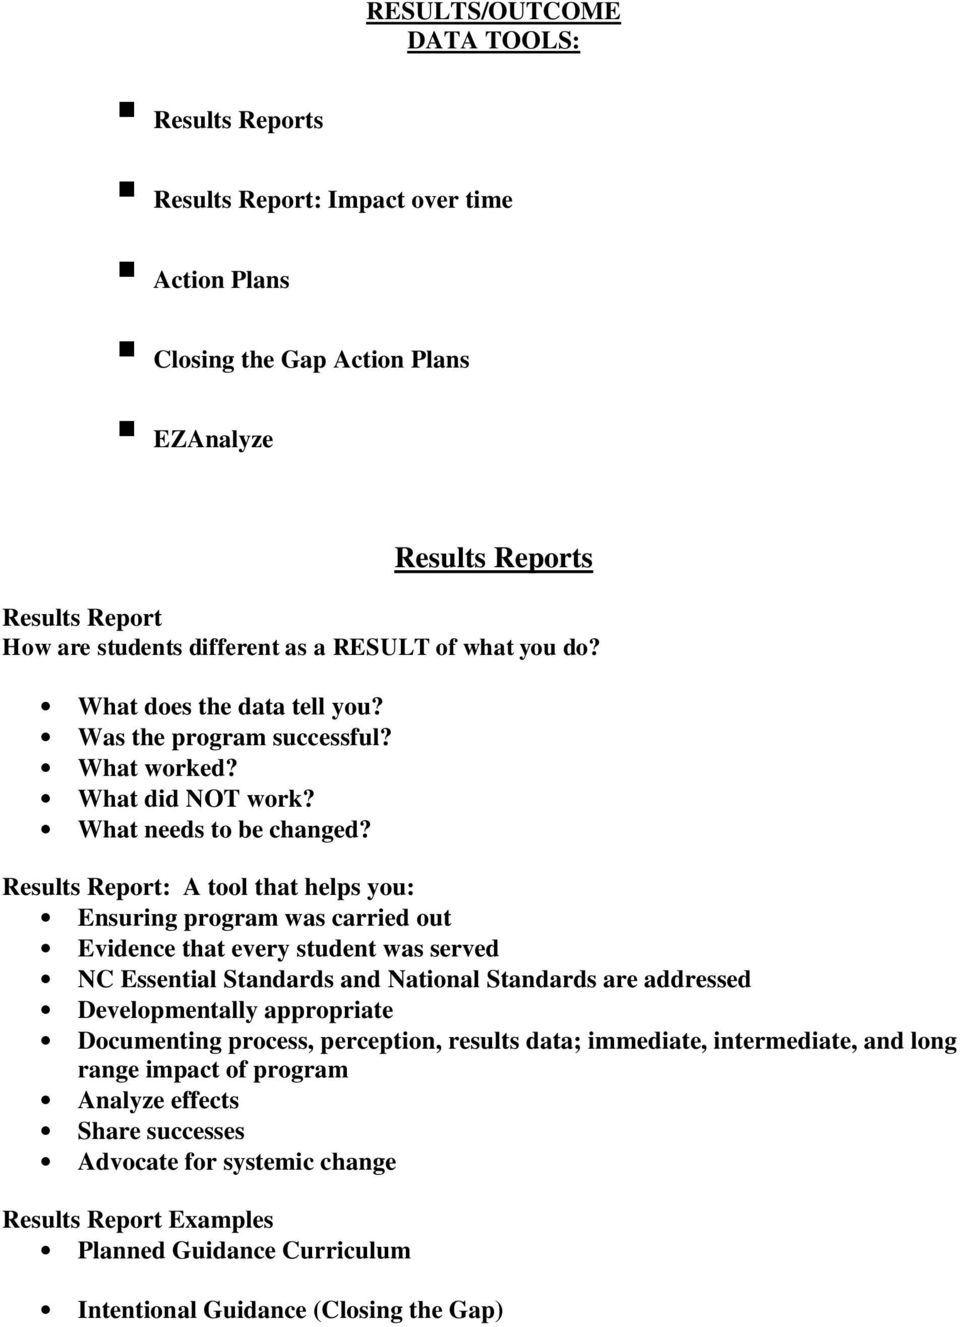 Results Report: A tool that helps you: Ensuring program was carried out Evidence that every student was served NC Essential Standards and National Standards are addressed Developmentally